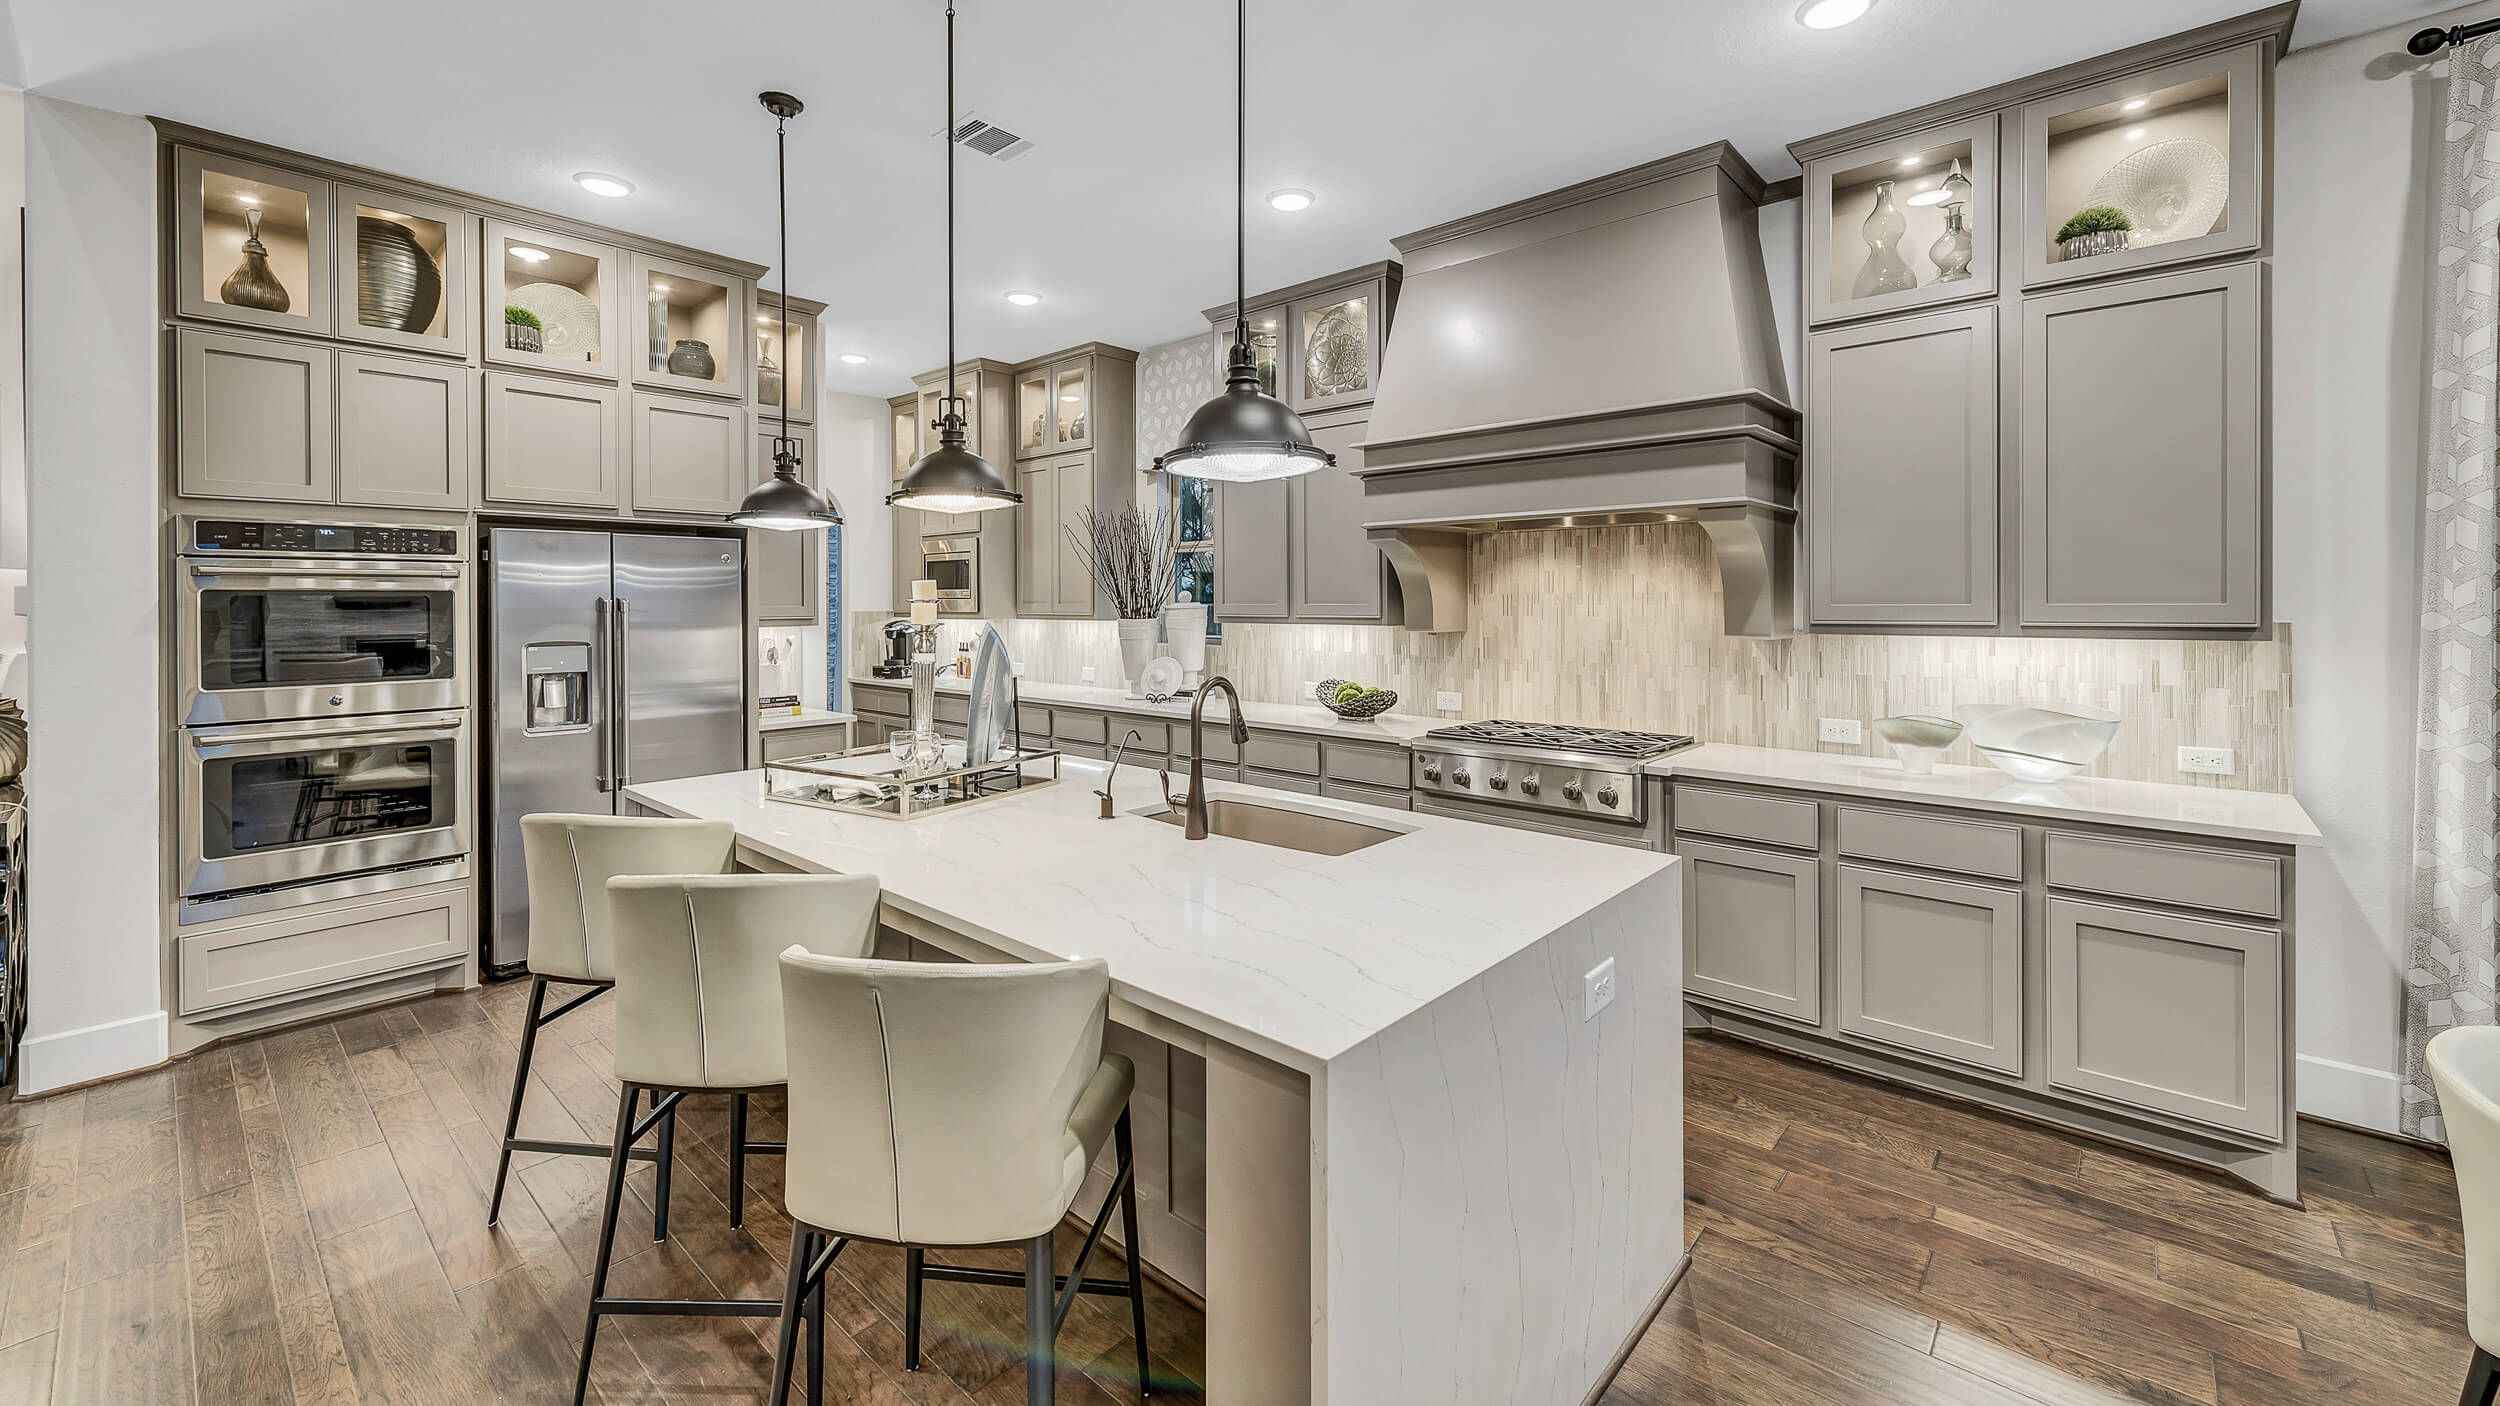 Comfort And Innovative Design In Mind A Signature Feature Of Darling Homes Is The Incredible Worke Gourmet Kitchens Set Up